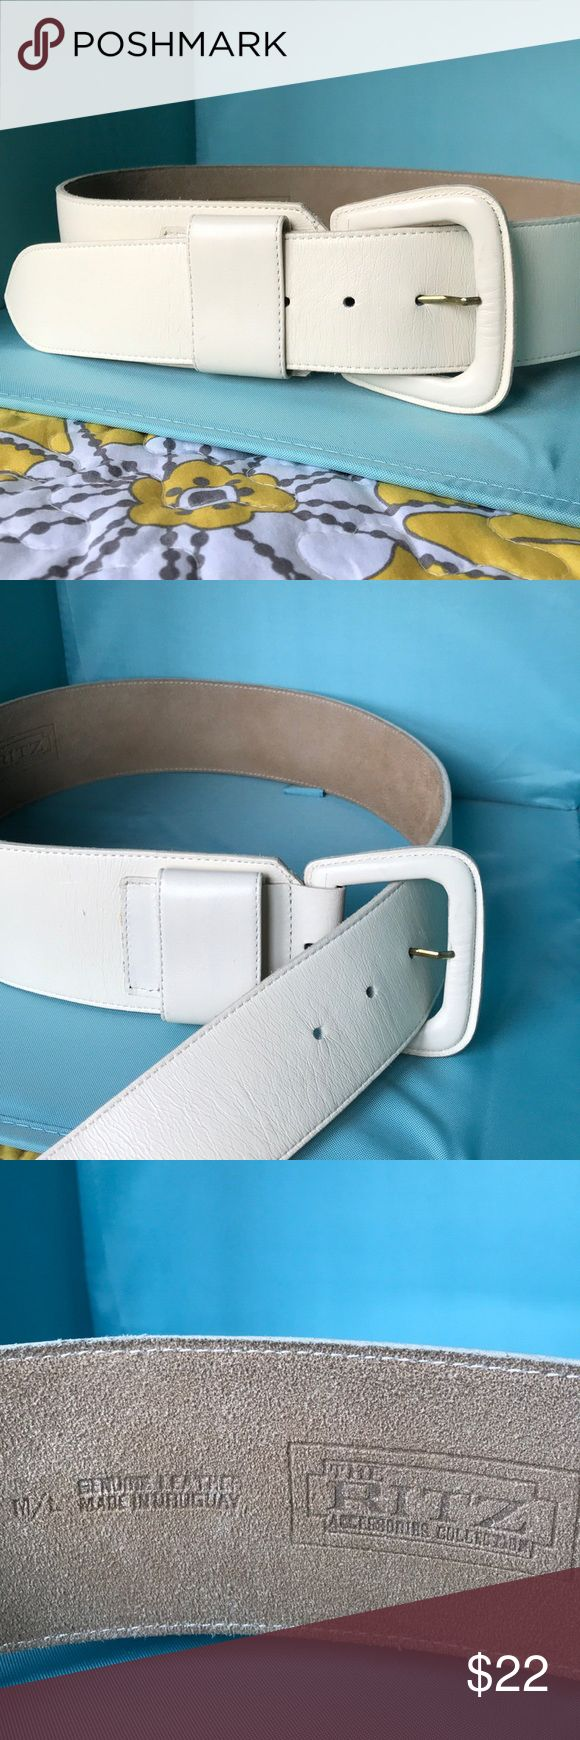 Vintage leather, cream color, women's belt Vintage wide cream belt, great condition, perfect for vintage skirt, dress or pant. Measures 39 inches in length. Accessories Belts